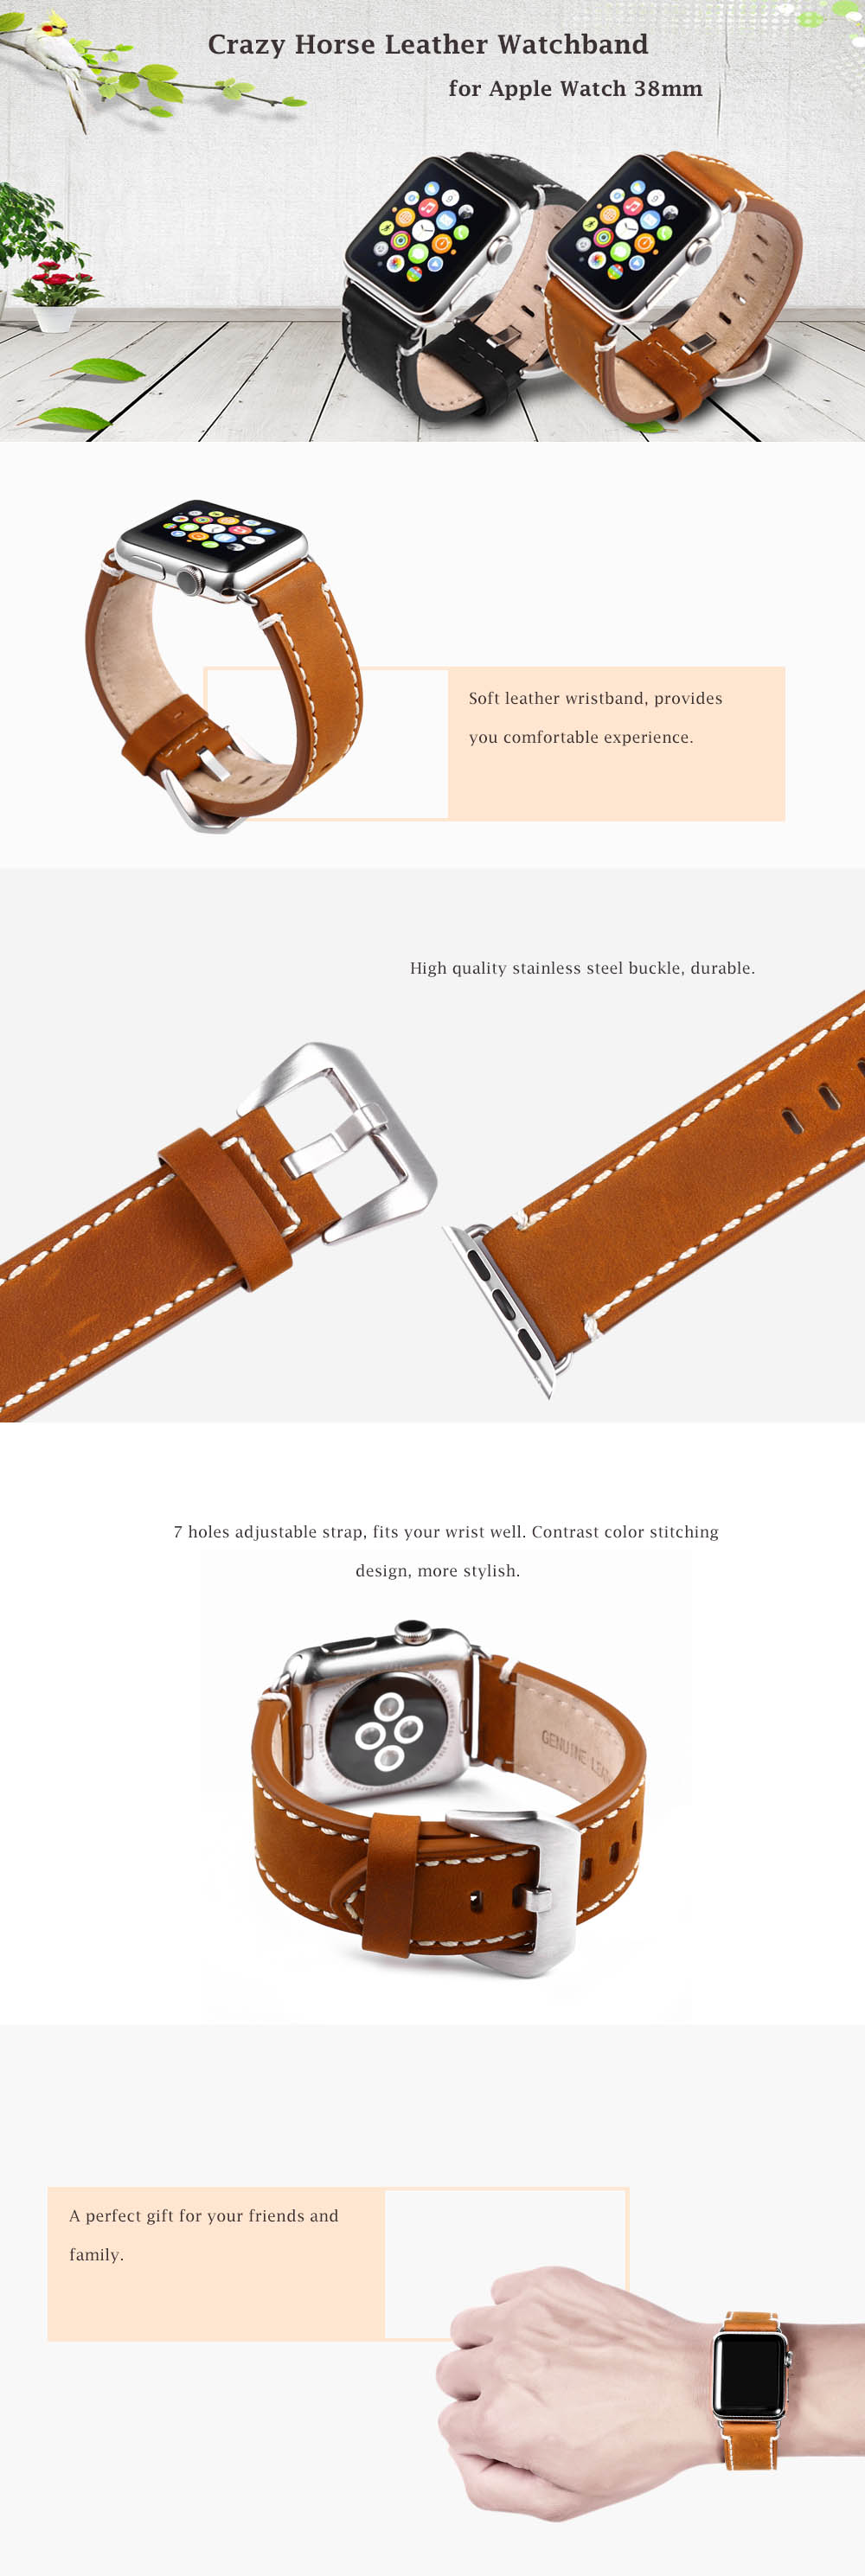 Crazy Horse Genuine Leather Wristband Replacement Watchband for Apple Watch 38mm